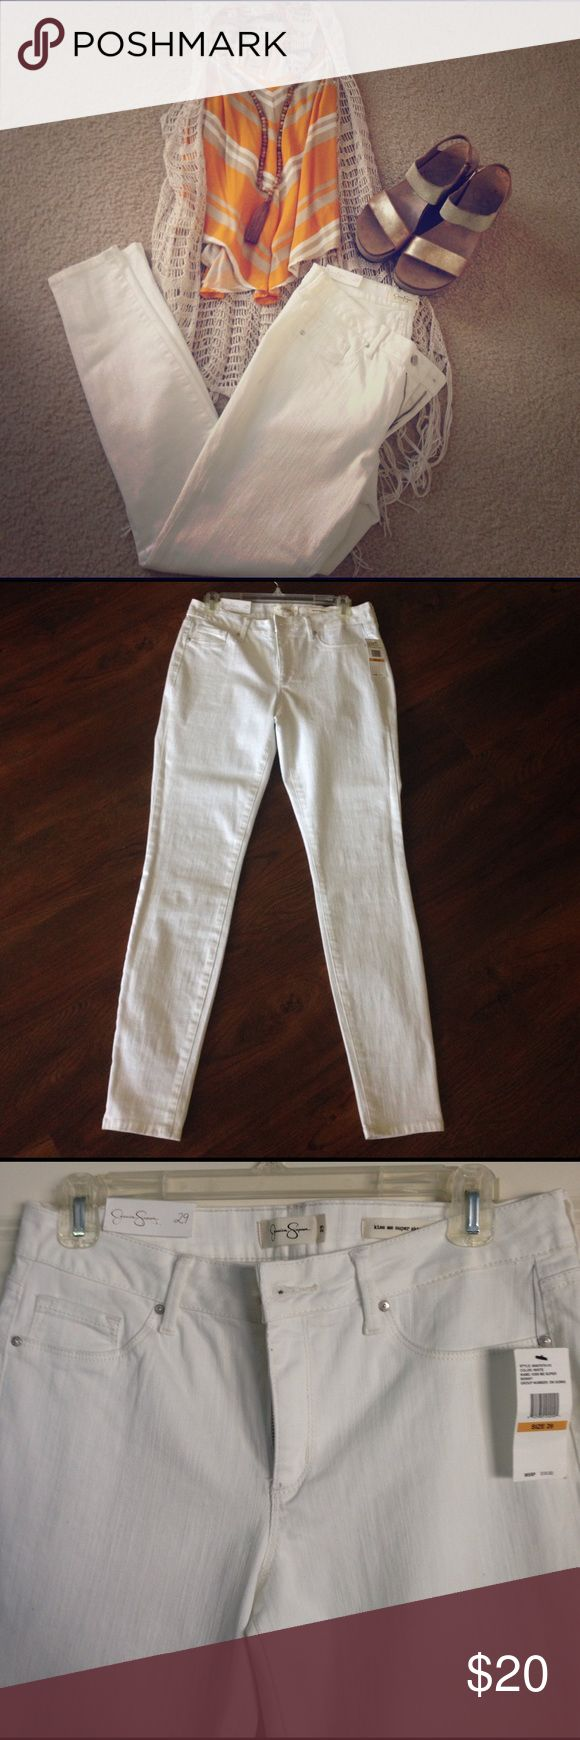 Jessica Simpson Jeans White skinny leg Jessica Simpson Jeans. Brand new. Love them but they do not fit. Jessica Simpson Jeans Skinny